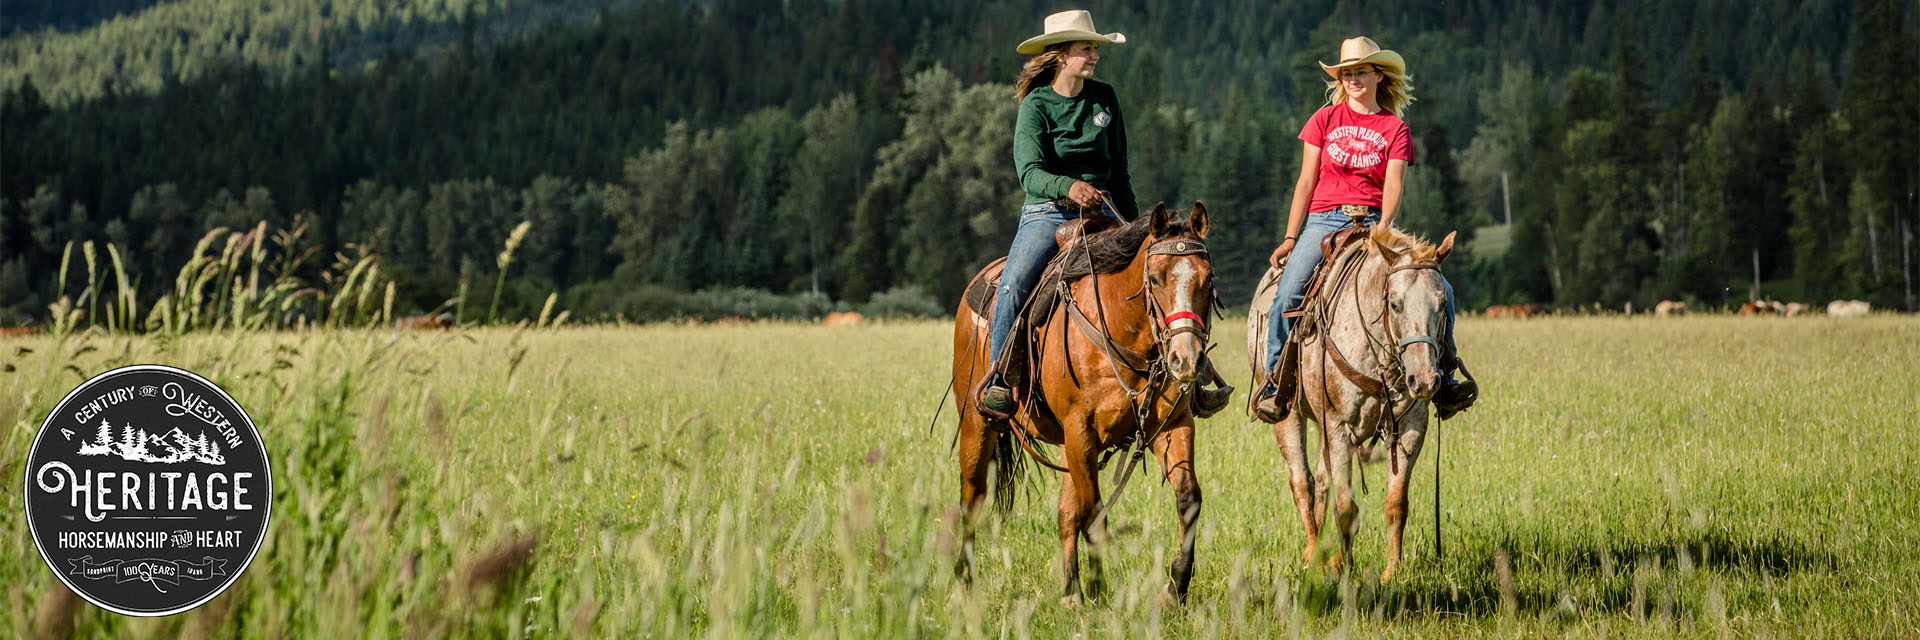 A Century of Western Heritage, Horsemanship and Heart